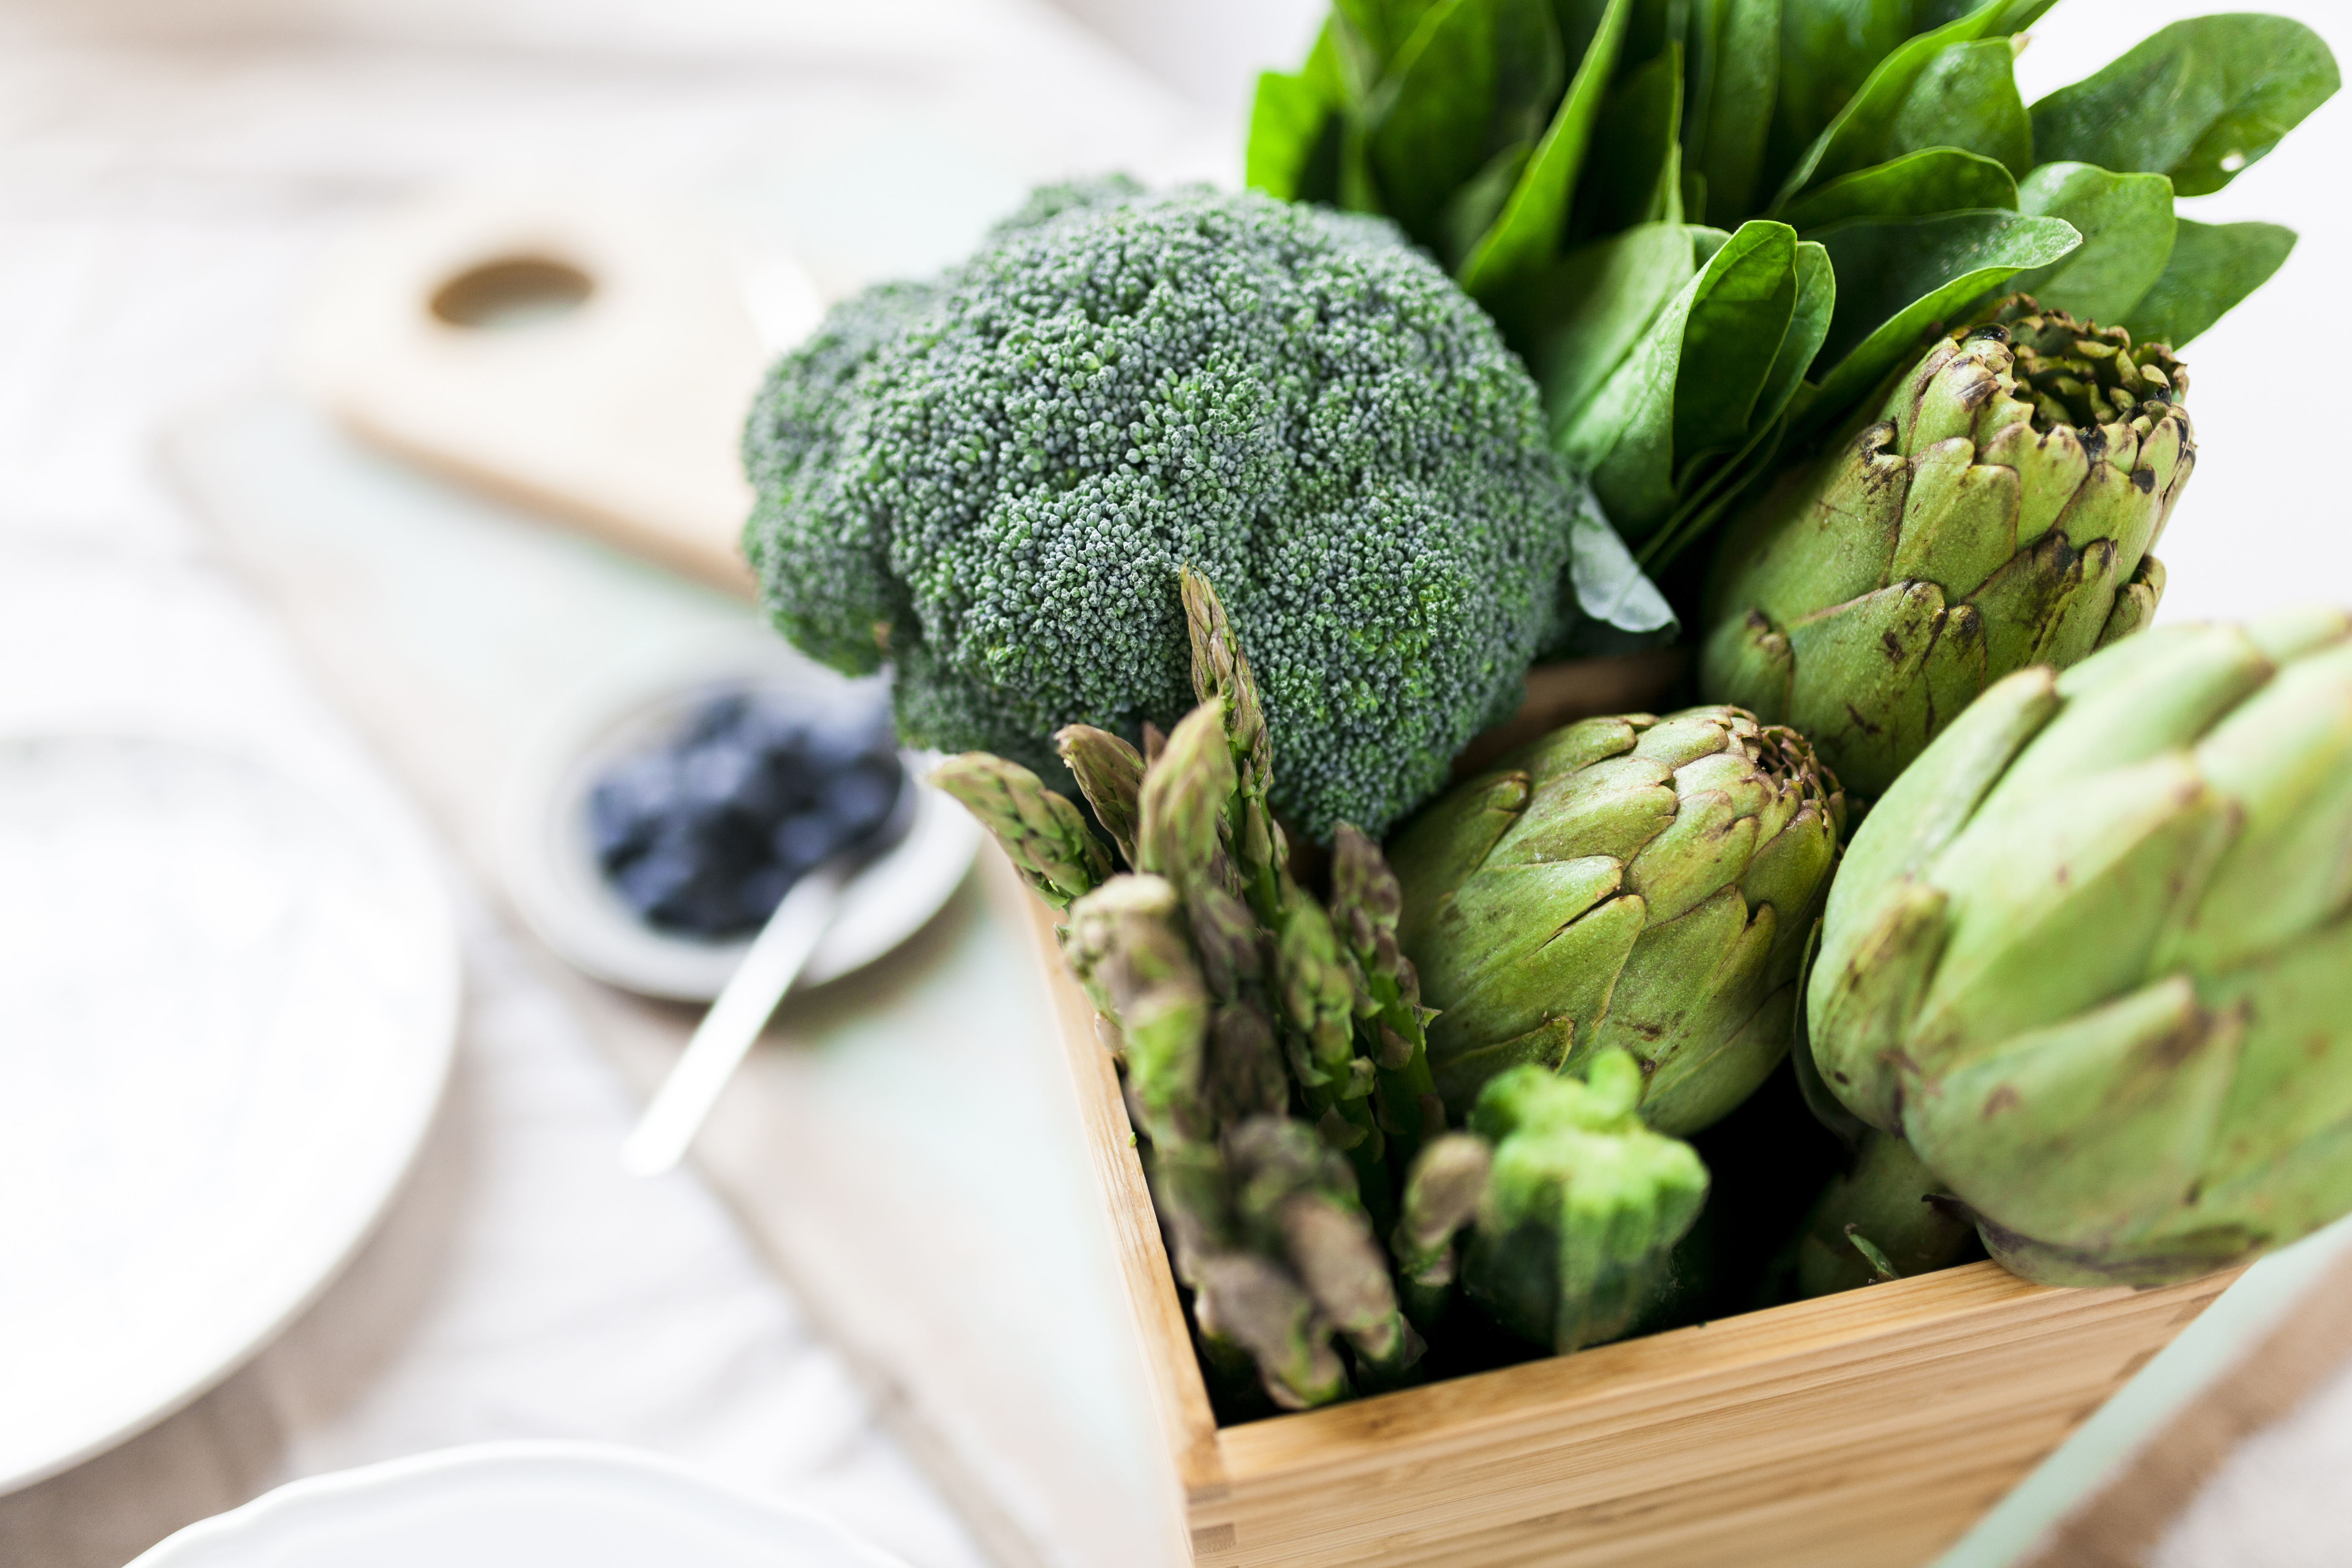 Superfood broccoli will be more nutritious